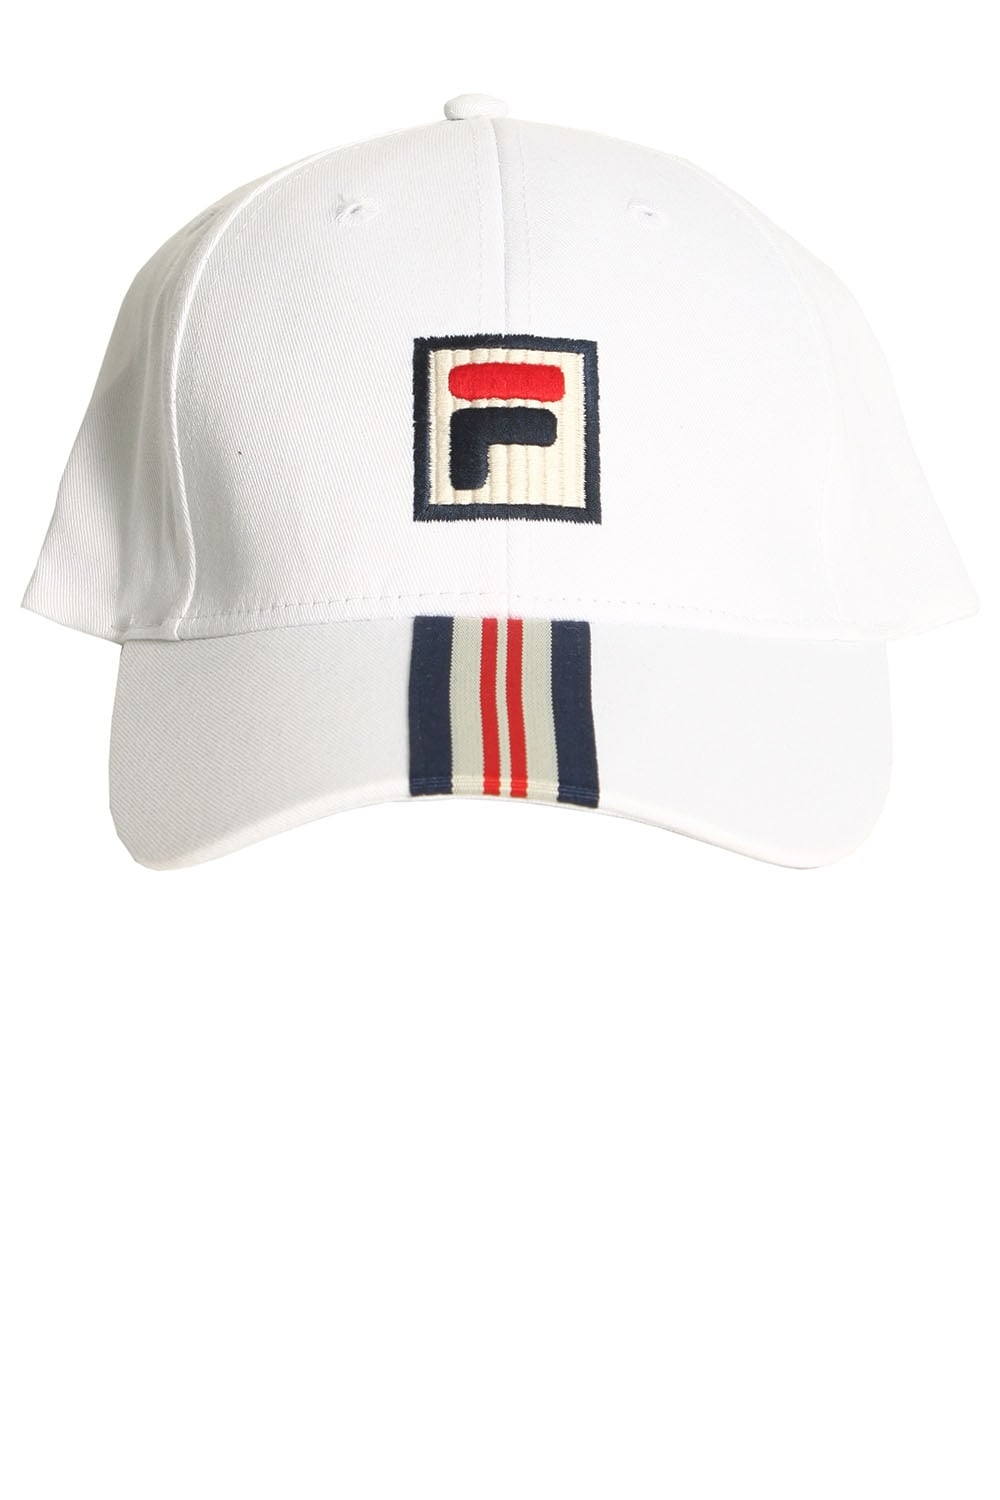 9a77f477c3ac4f Fila Vintage Walker Baseball Cap White | Buy Fila Hats & Baseball Caps